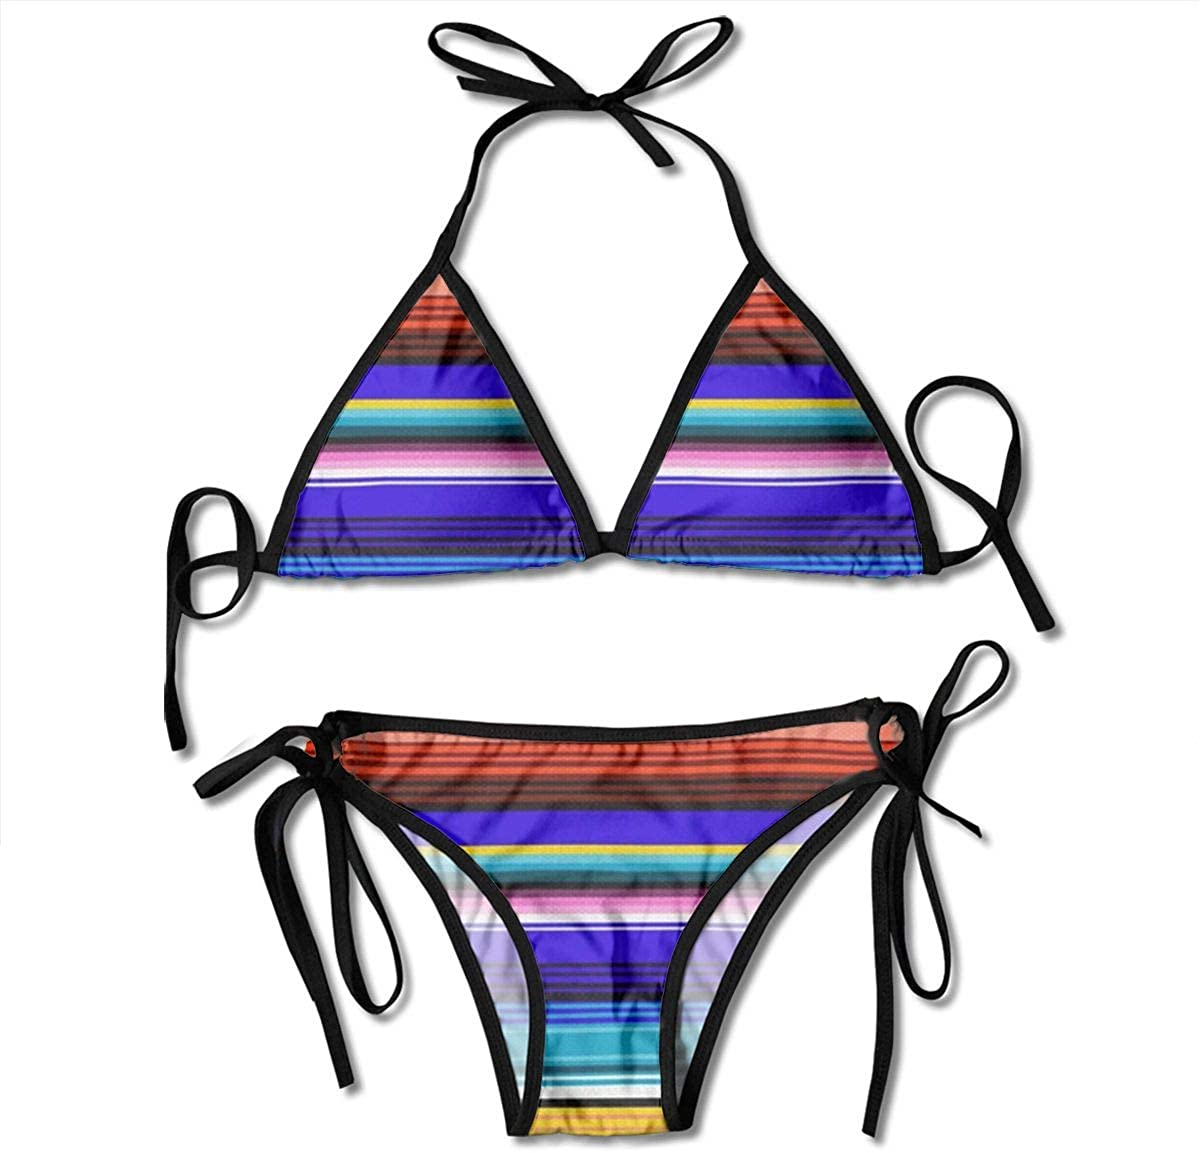 Mexicans girls in bikinis Amazon Com Nonebrand Beautiful Mexican Stripes Padded Push Up Bikini Set Two Piece Swimsuit Beach Bathing Suits For Women Girls Sexy Clothing